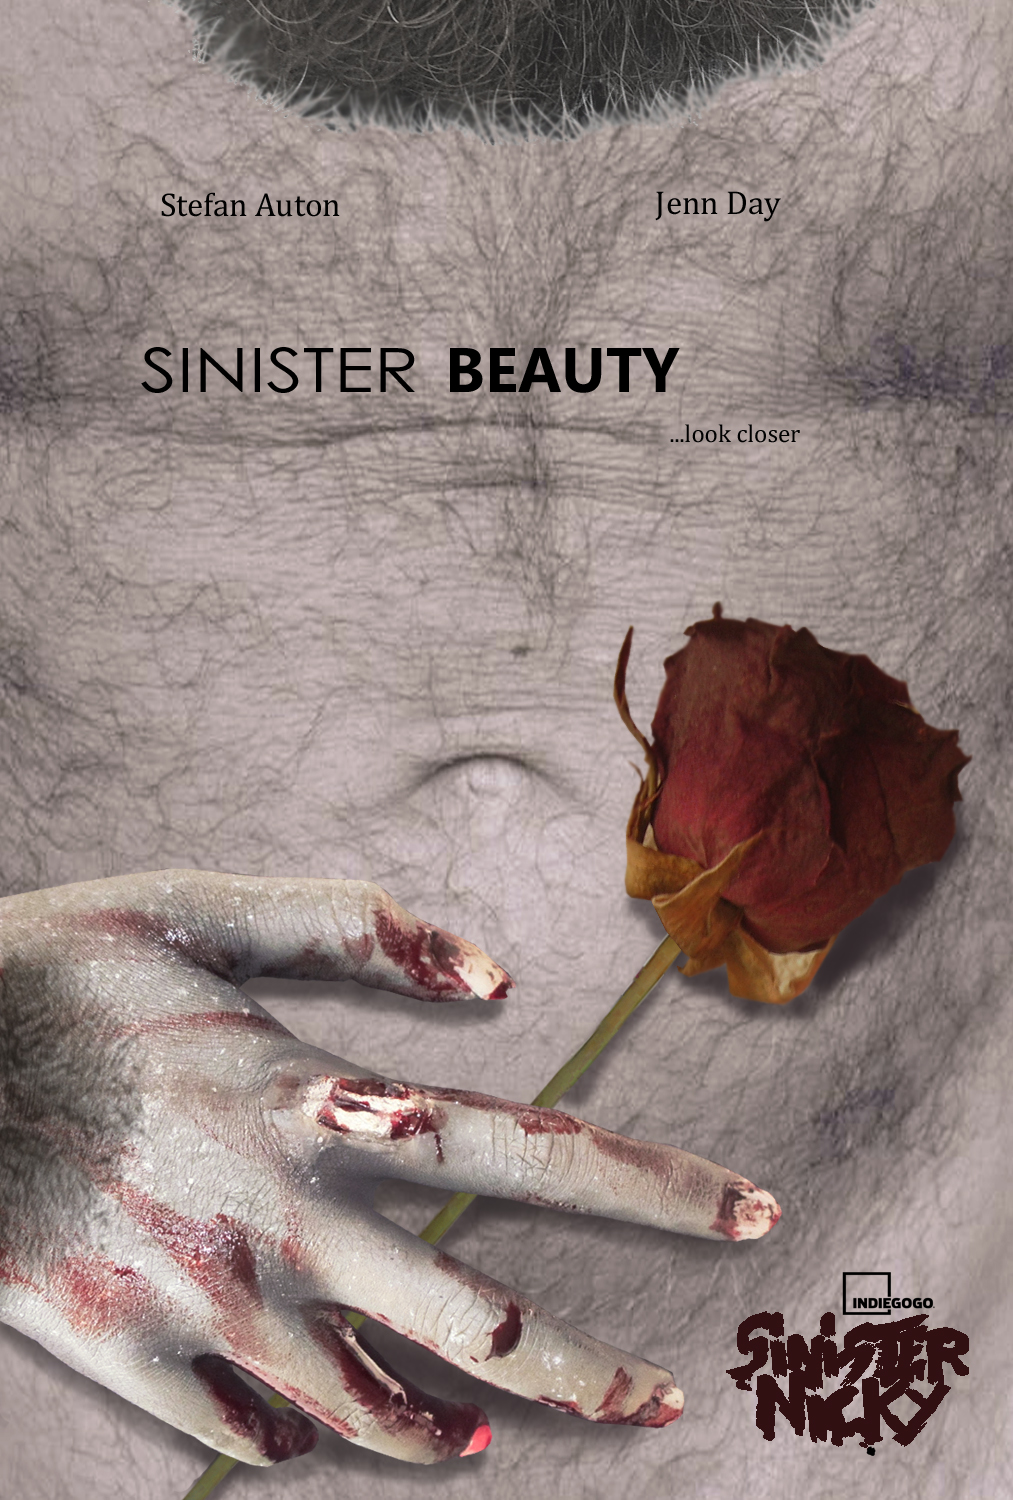 SINISTER BEAUTY